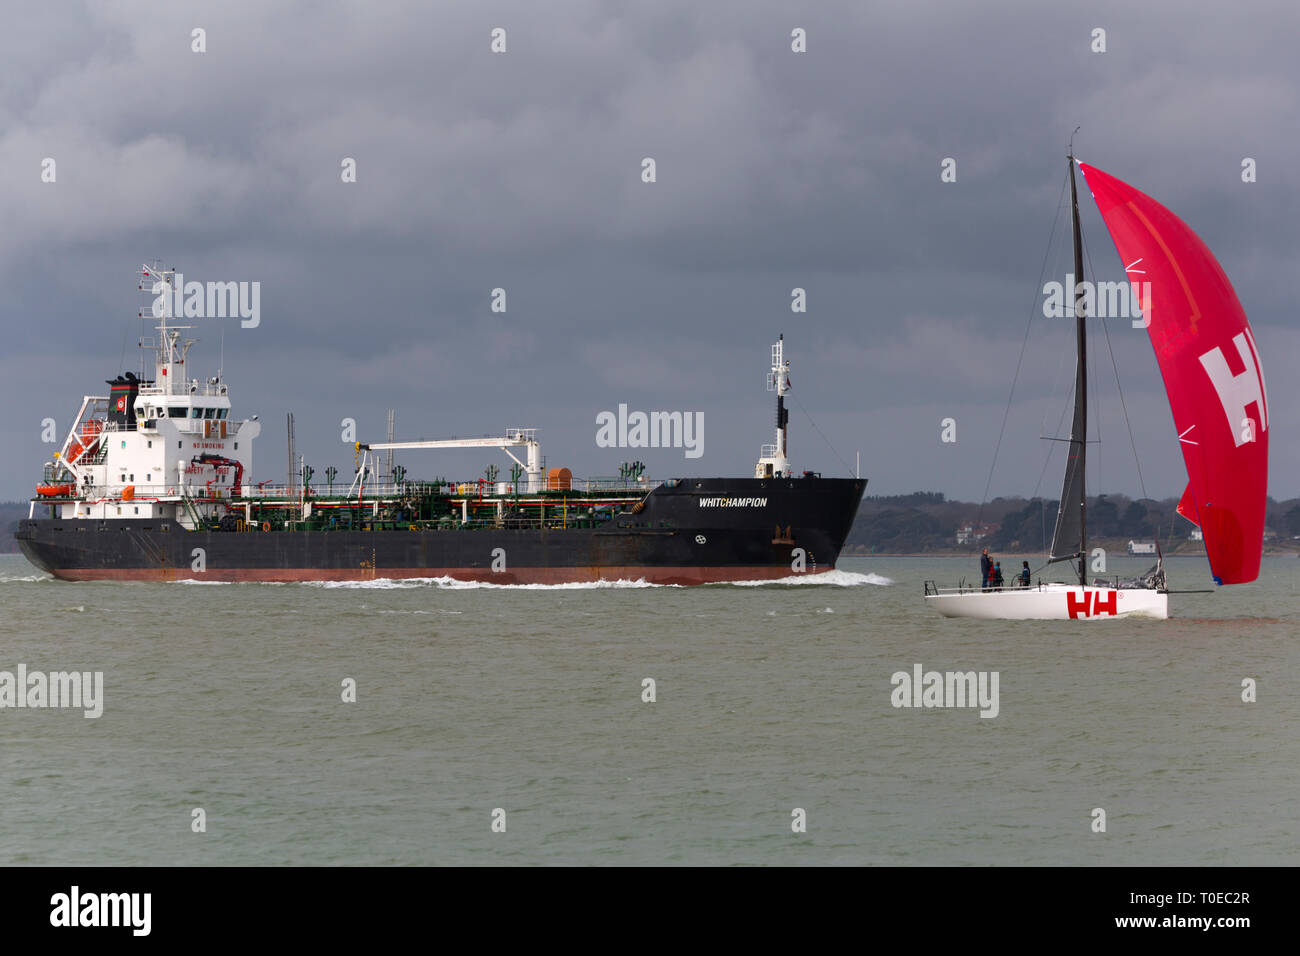 Oil,Products,Tanker,ship,Whitchampion,hazard,a,major,The Solent,Southampton,Fawley,Refinery,Cowes, isle of Wight,England,UK, - Stock Image